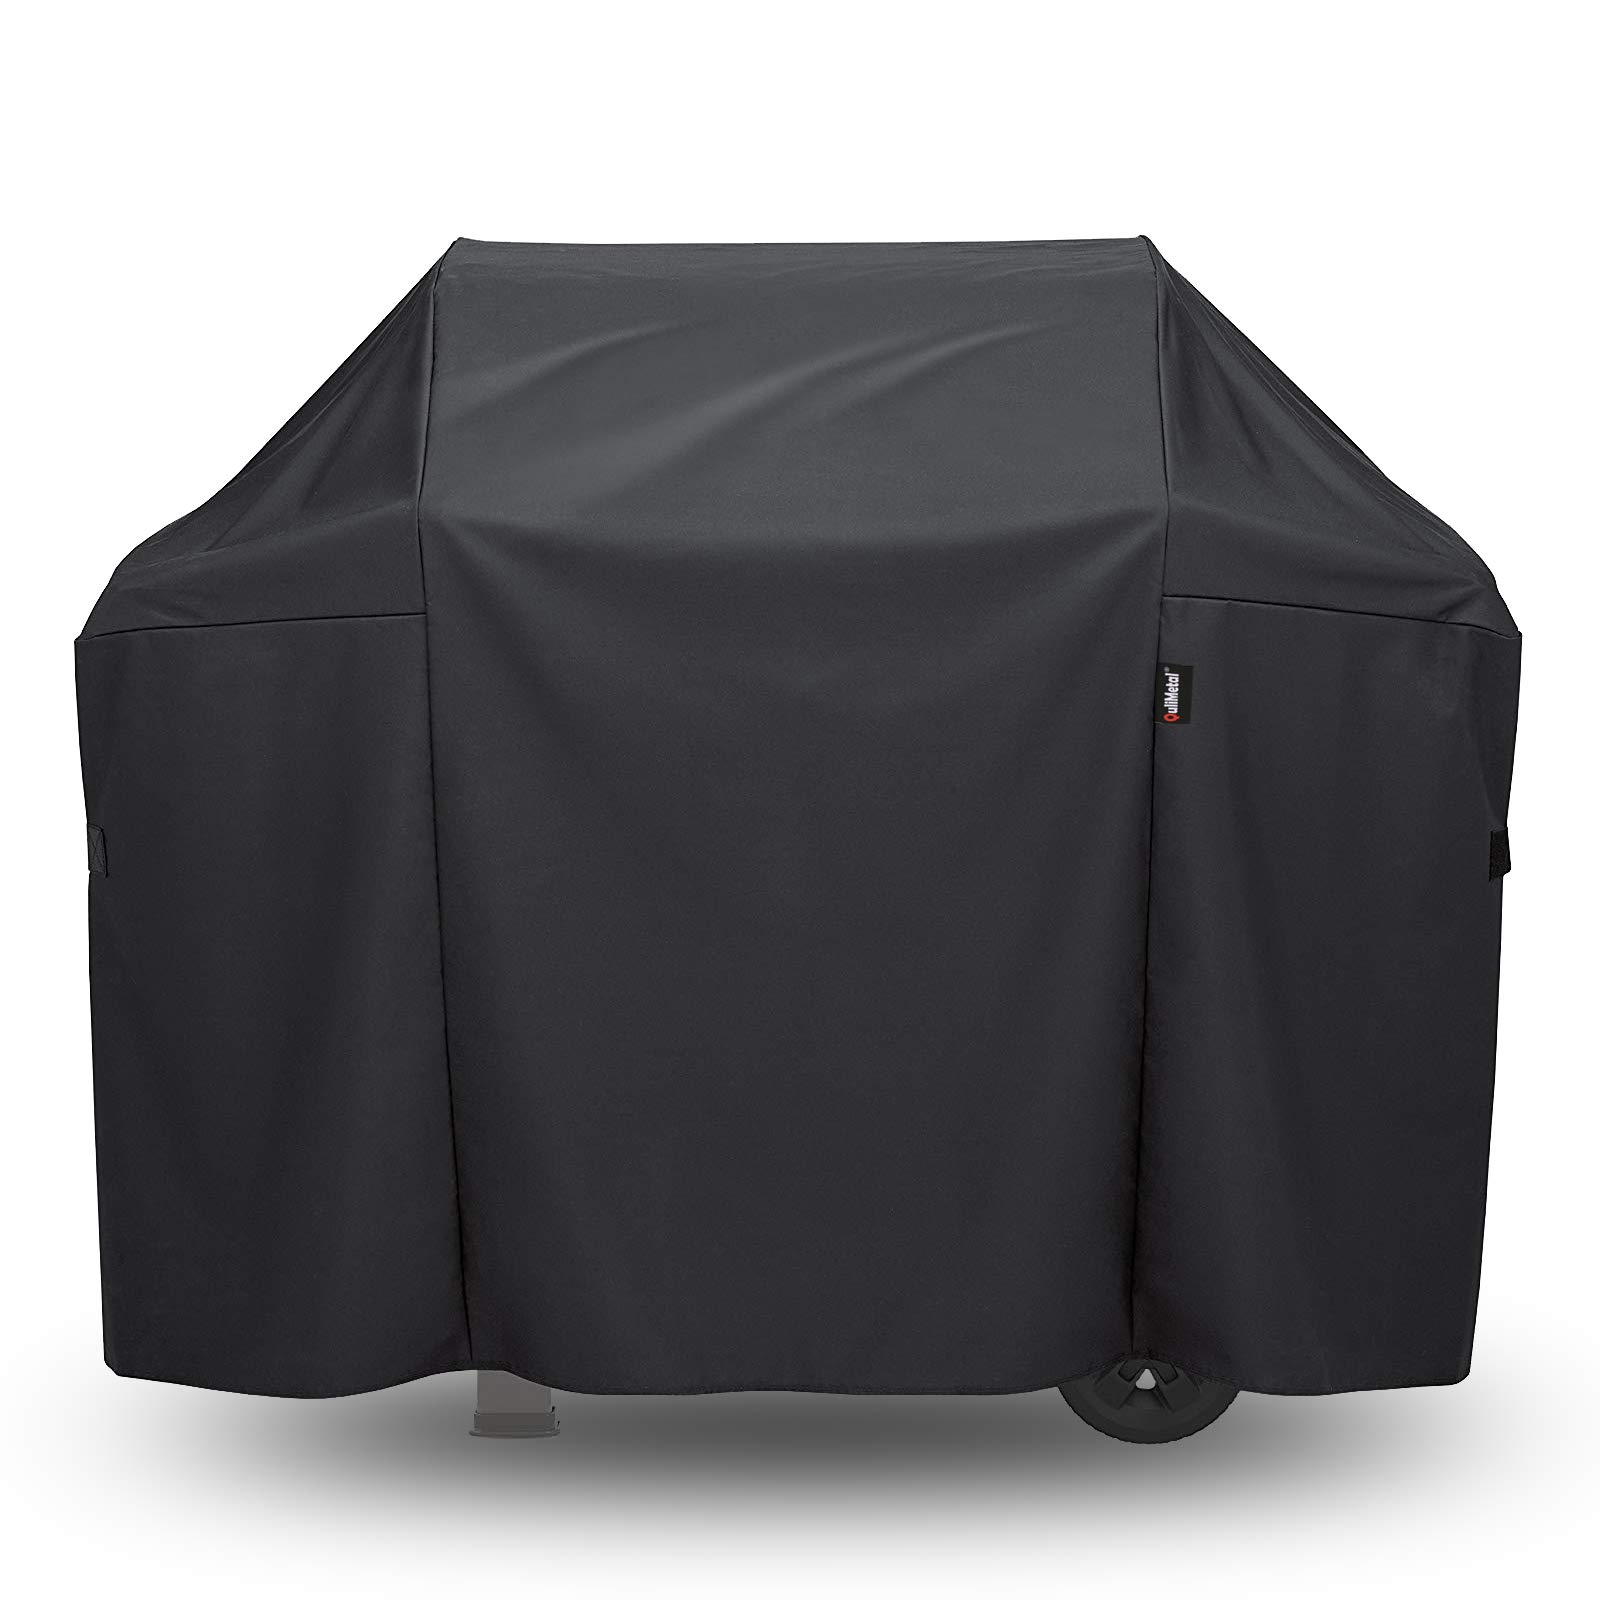 QuliMetal 7139 Grill Cover for Weber Spirit 300, Spirit II 300 & Spirit 200 Series (with Side Mounted Controls) Gas Grills, 51 Inches BBQ Grill Cover for Weber Spirit II 310/E310/330/E330 Grill